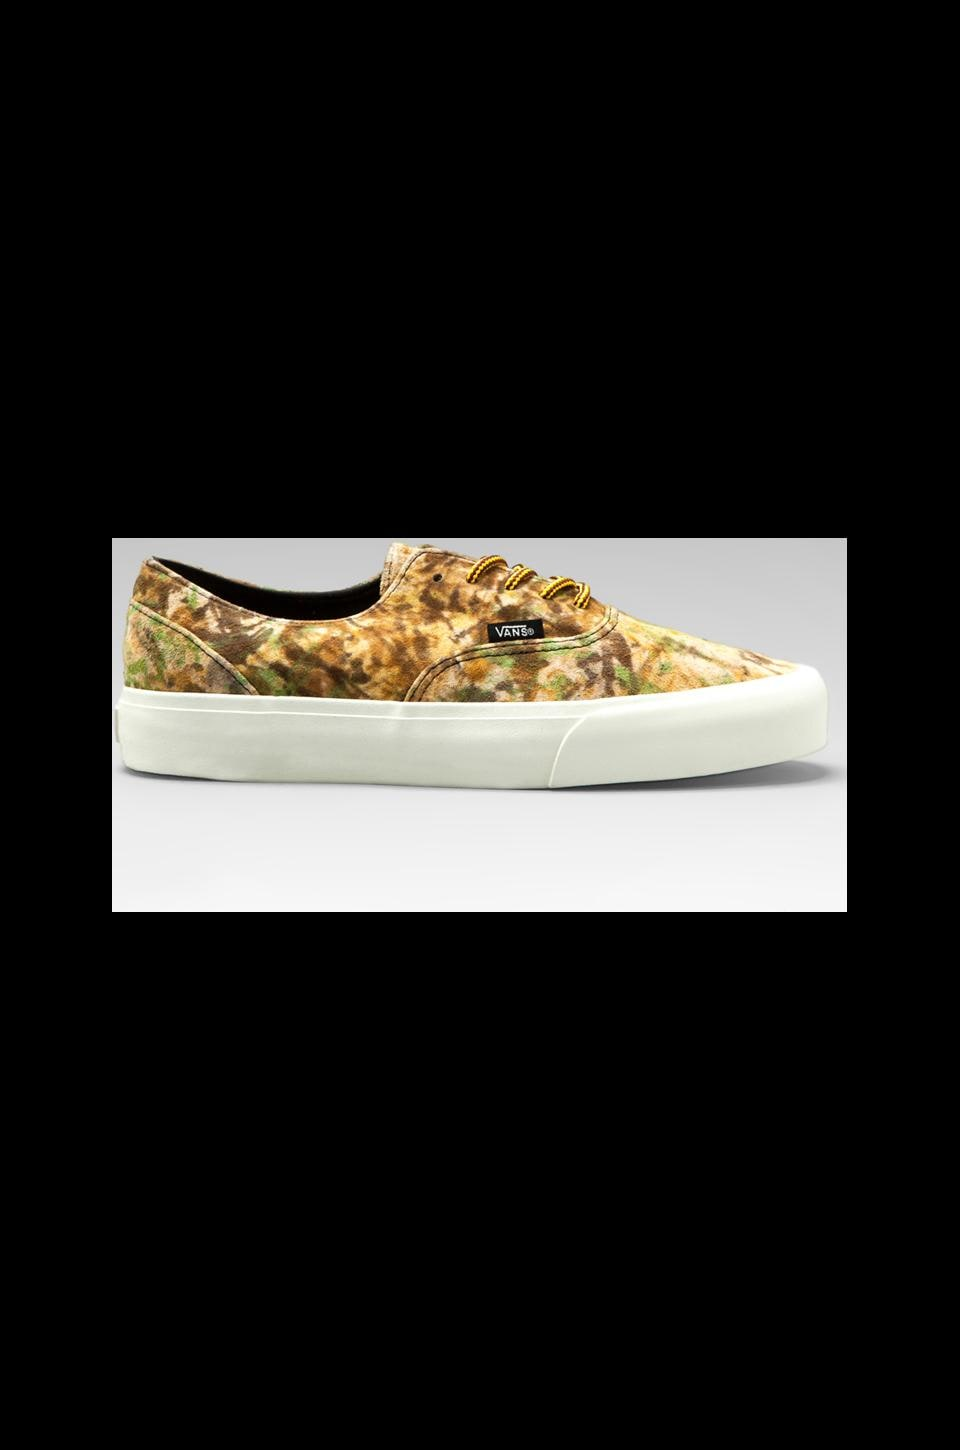 Vans California Era Decon in Camo Brown